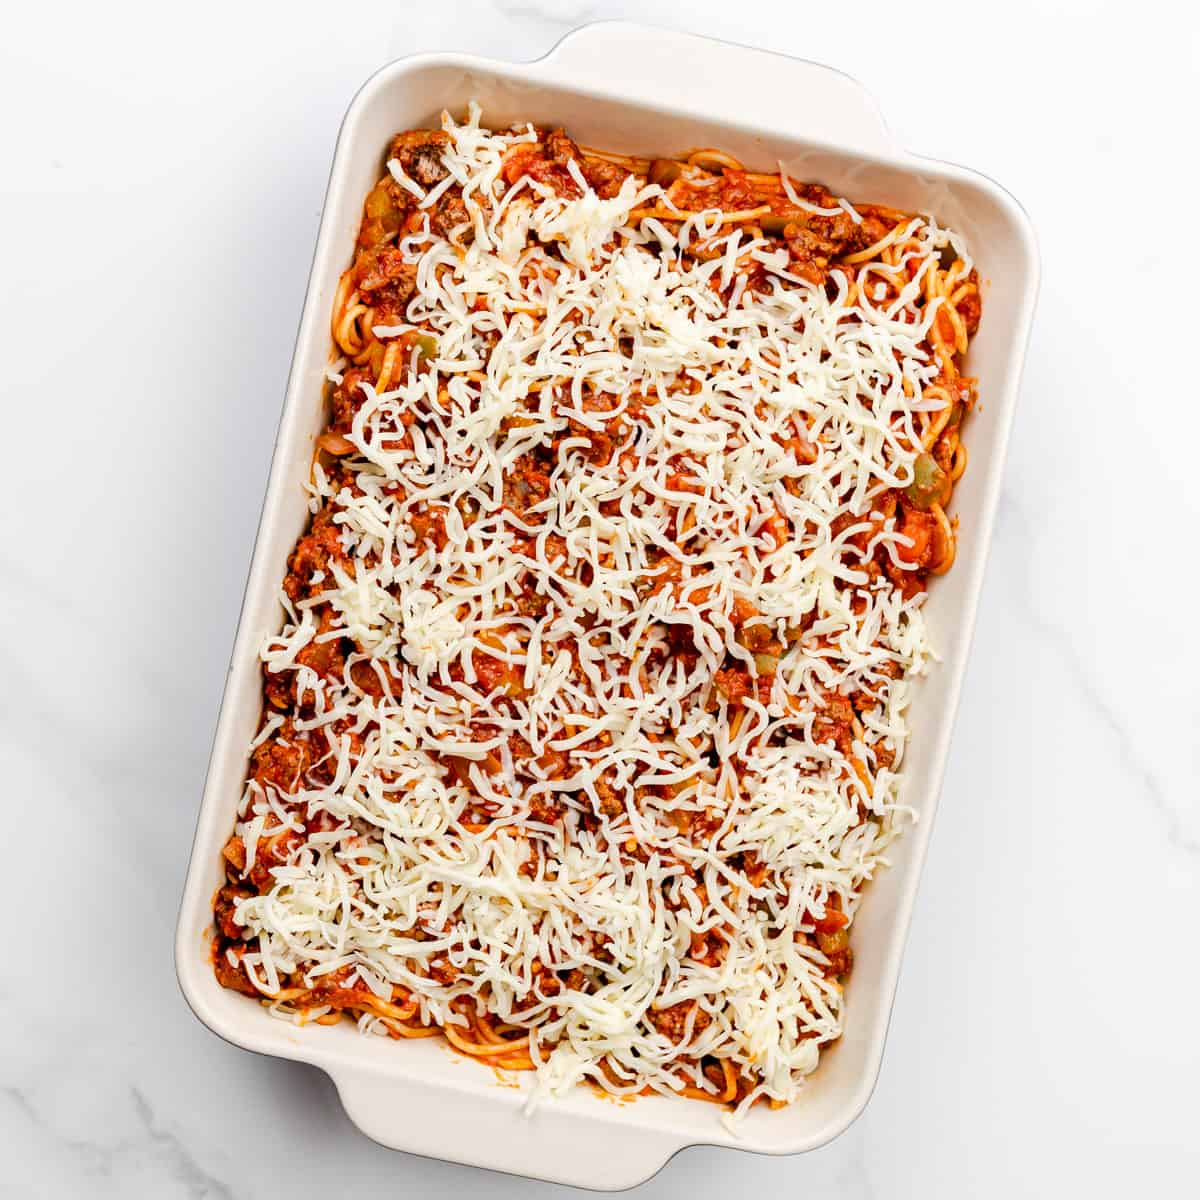 Place half of the spaghetti mixture in a greased 13x9-inch baking dish. Top with half of the shredded mozzarella cheese. Repeat the same process for the other half.